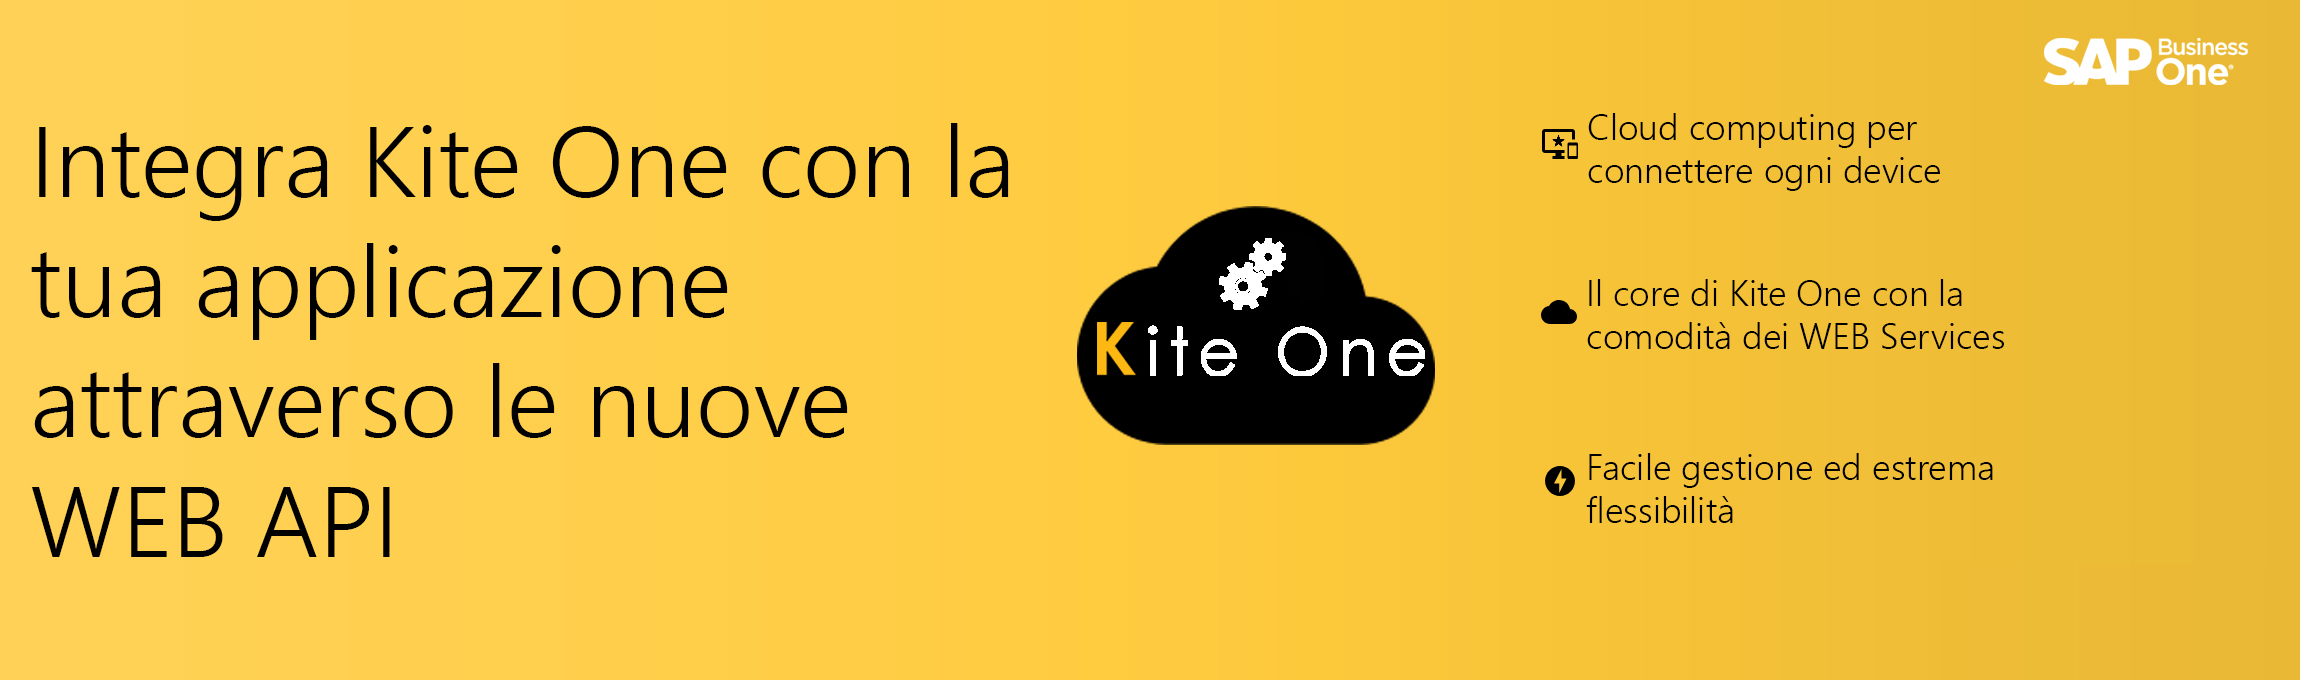 Integrazione Kite One